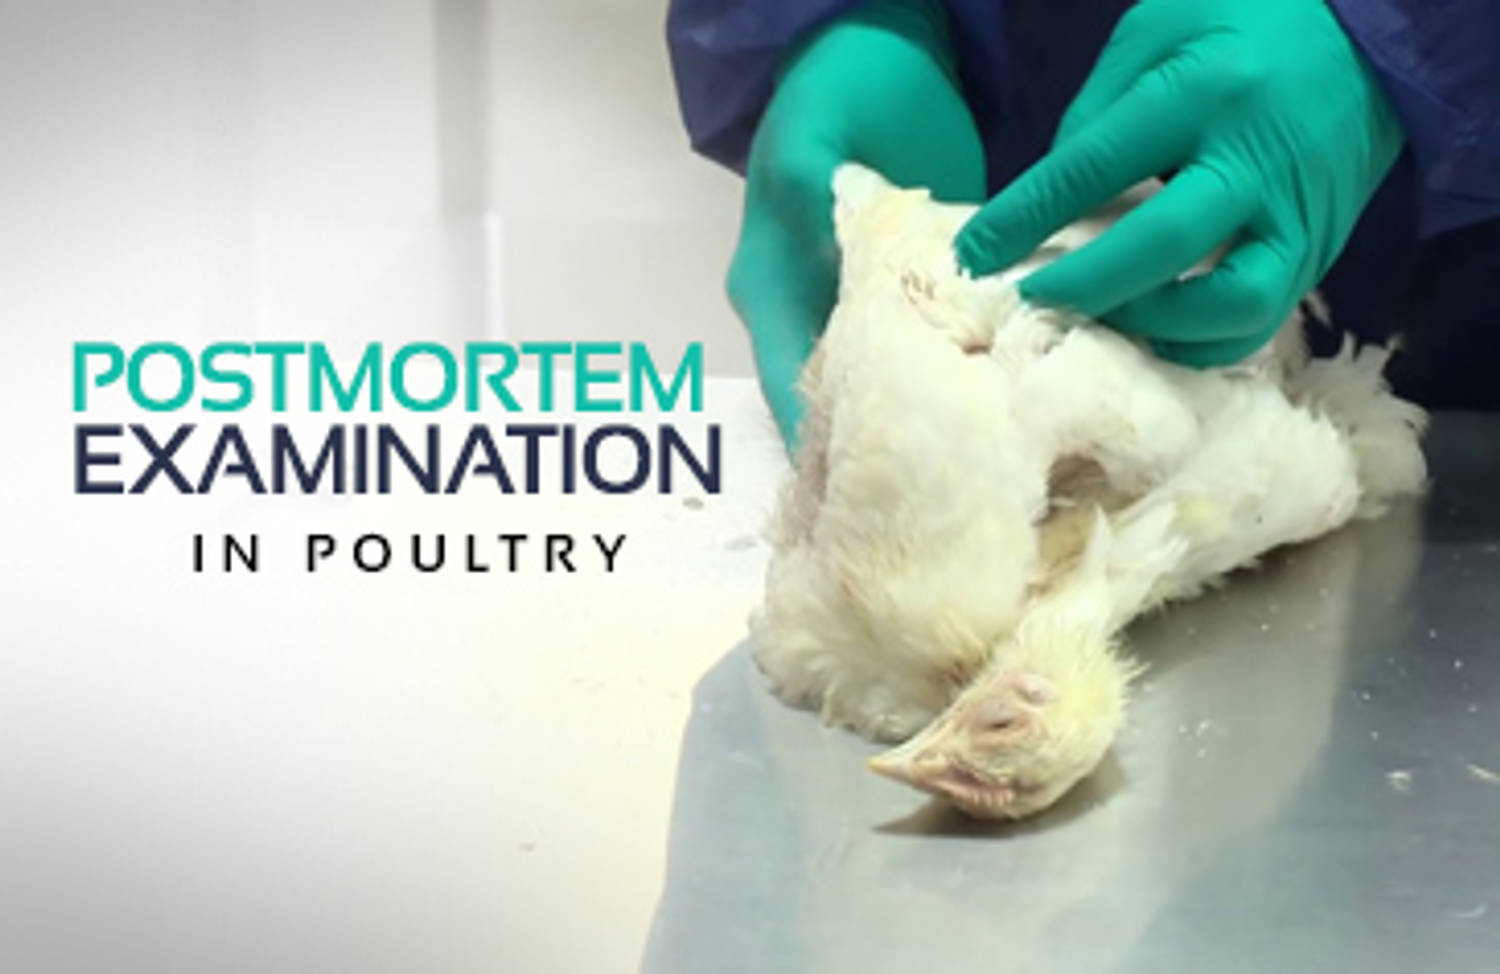 Post-Mortem Examination in Poultry